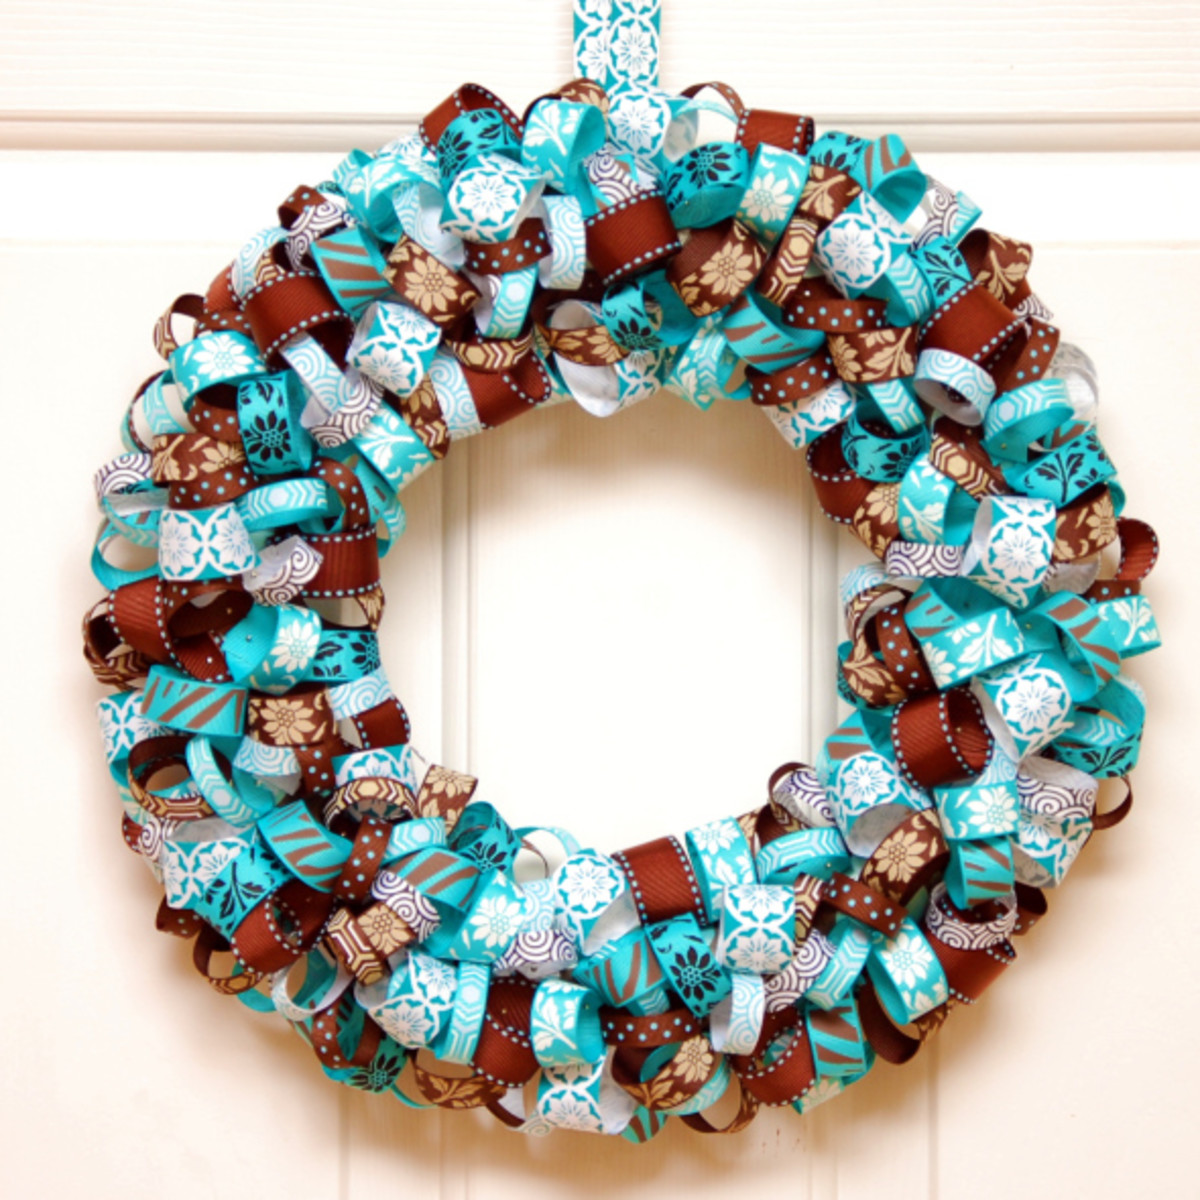 Ribbon wreaths can be made with seasonal, color and occasion themes